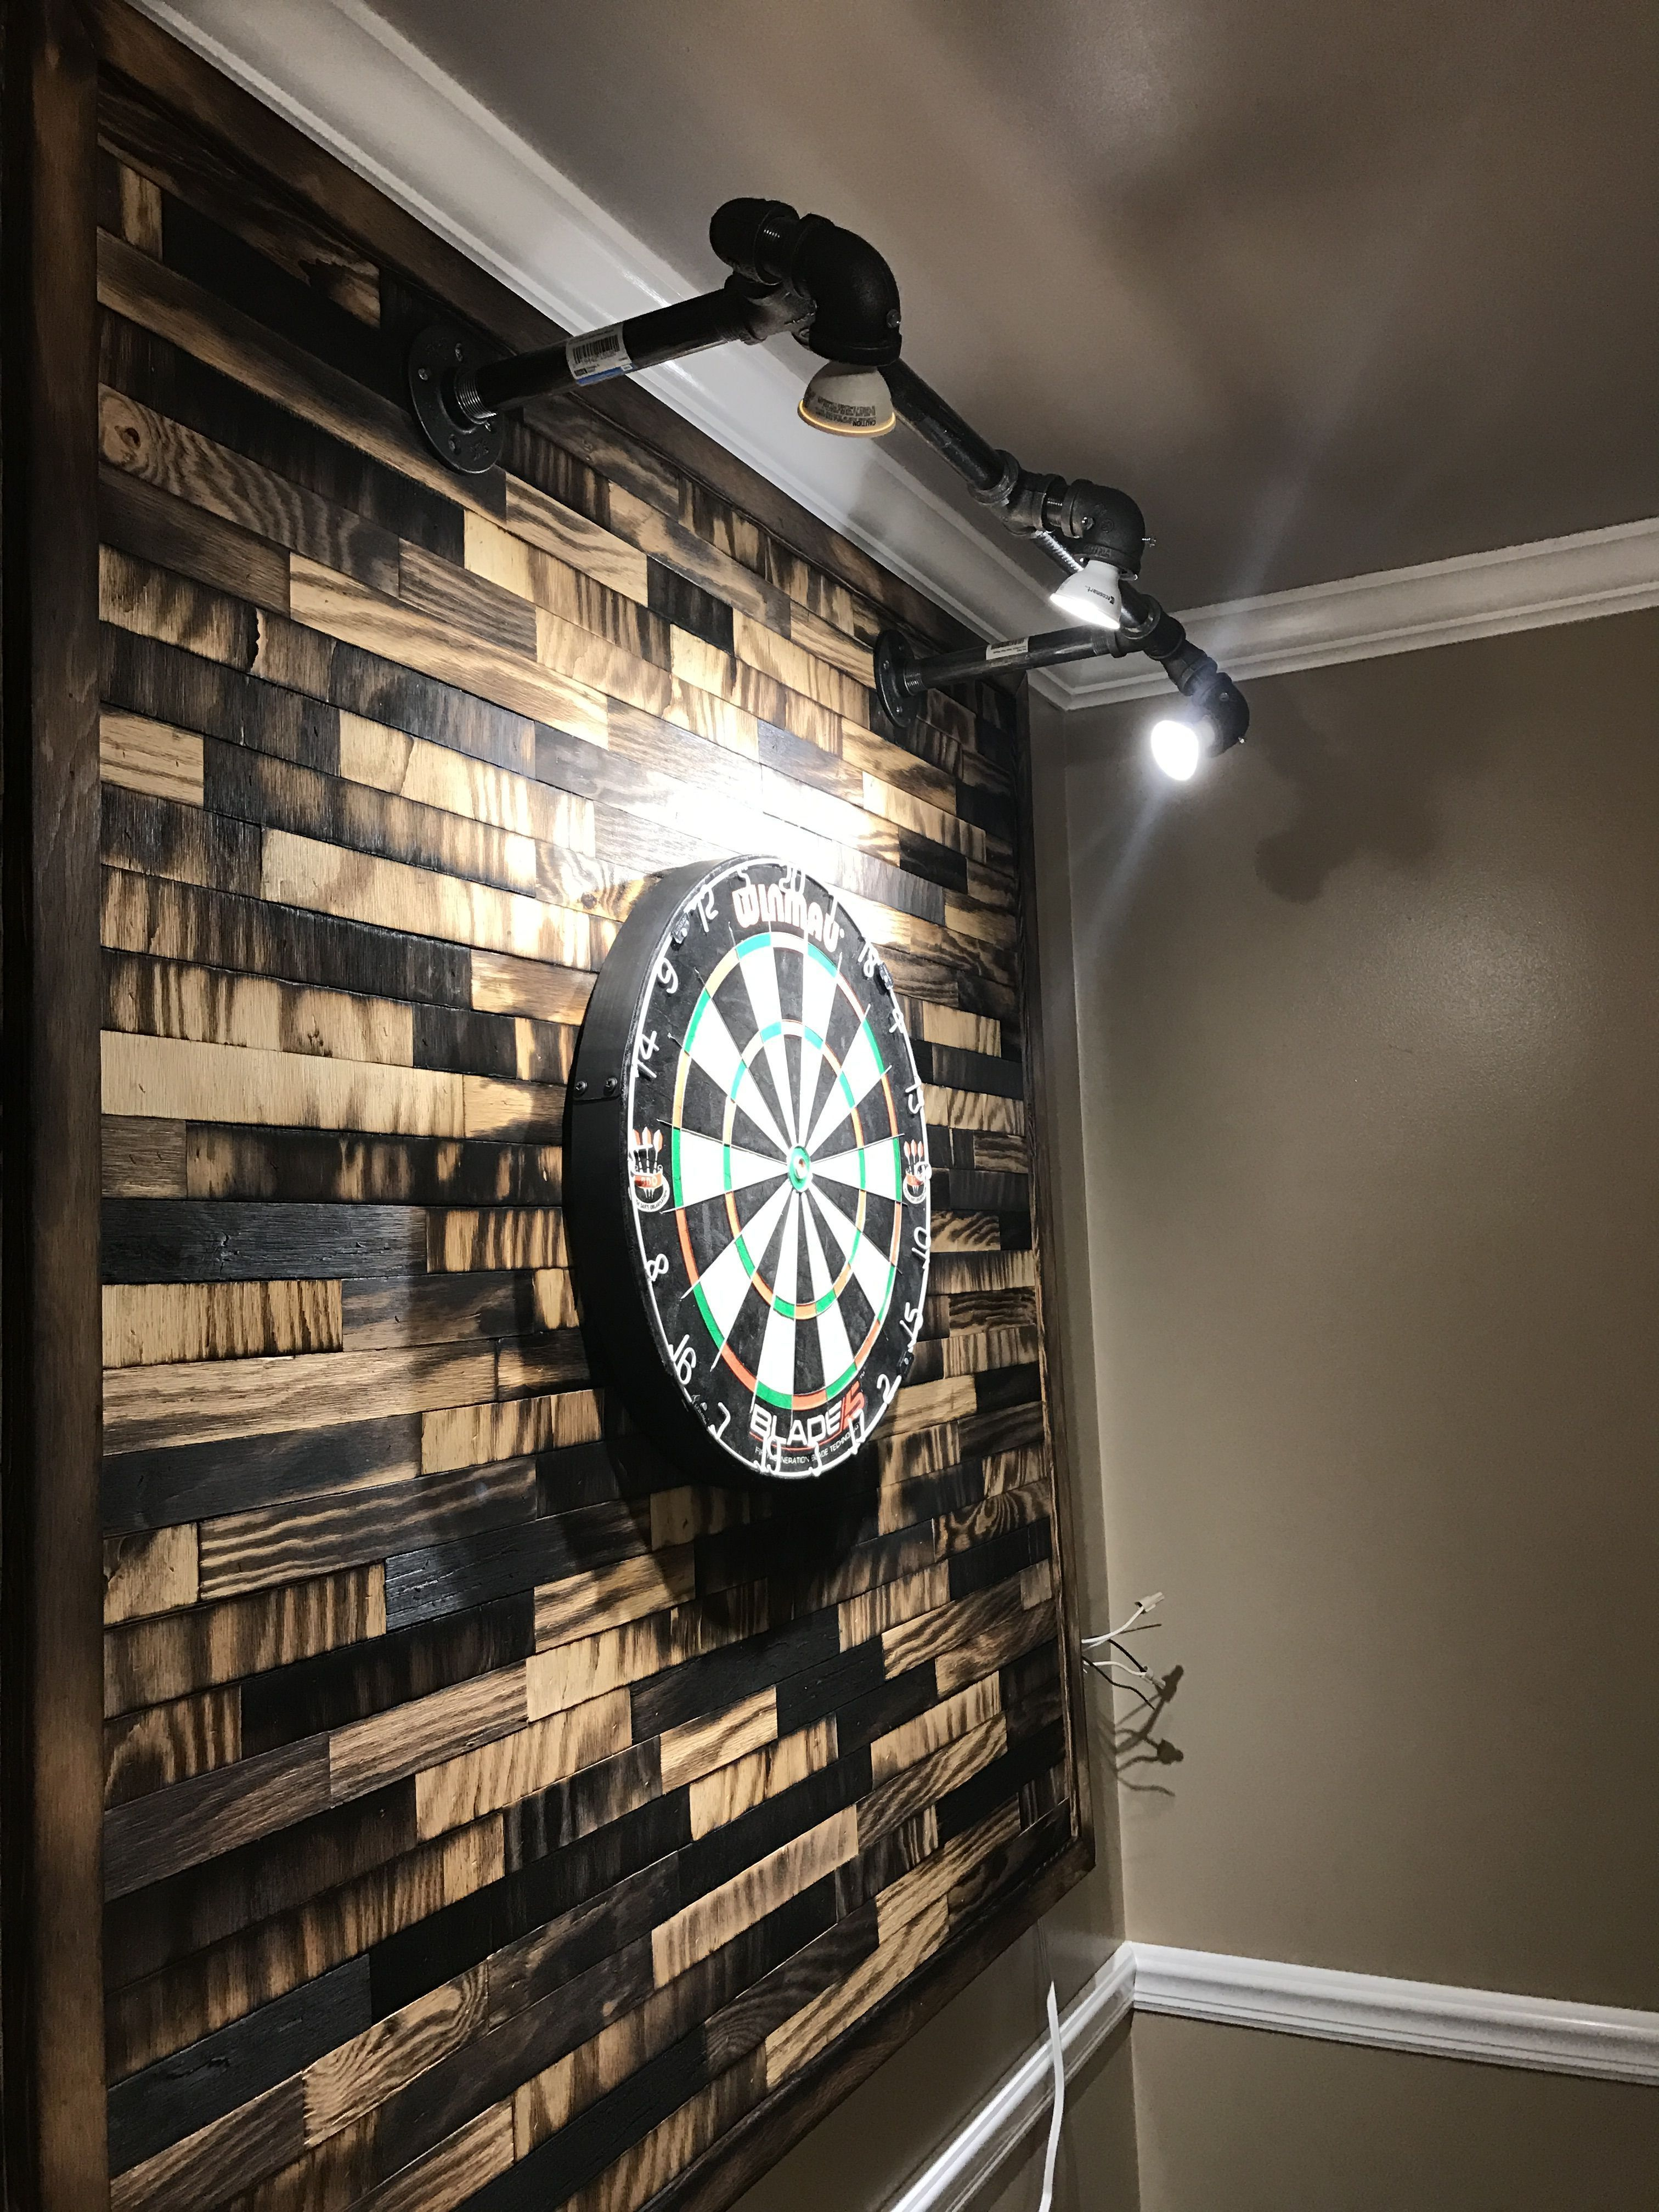 built a backer for my dart board using shou sugi ban a technique of burning wood to preserve it i cut up pieces of plywood and burnt the